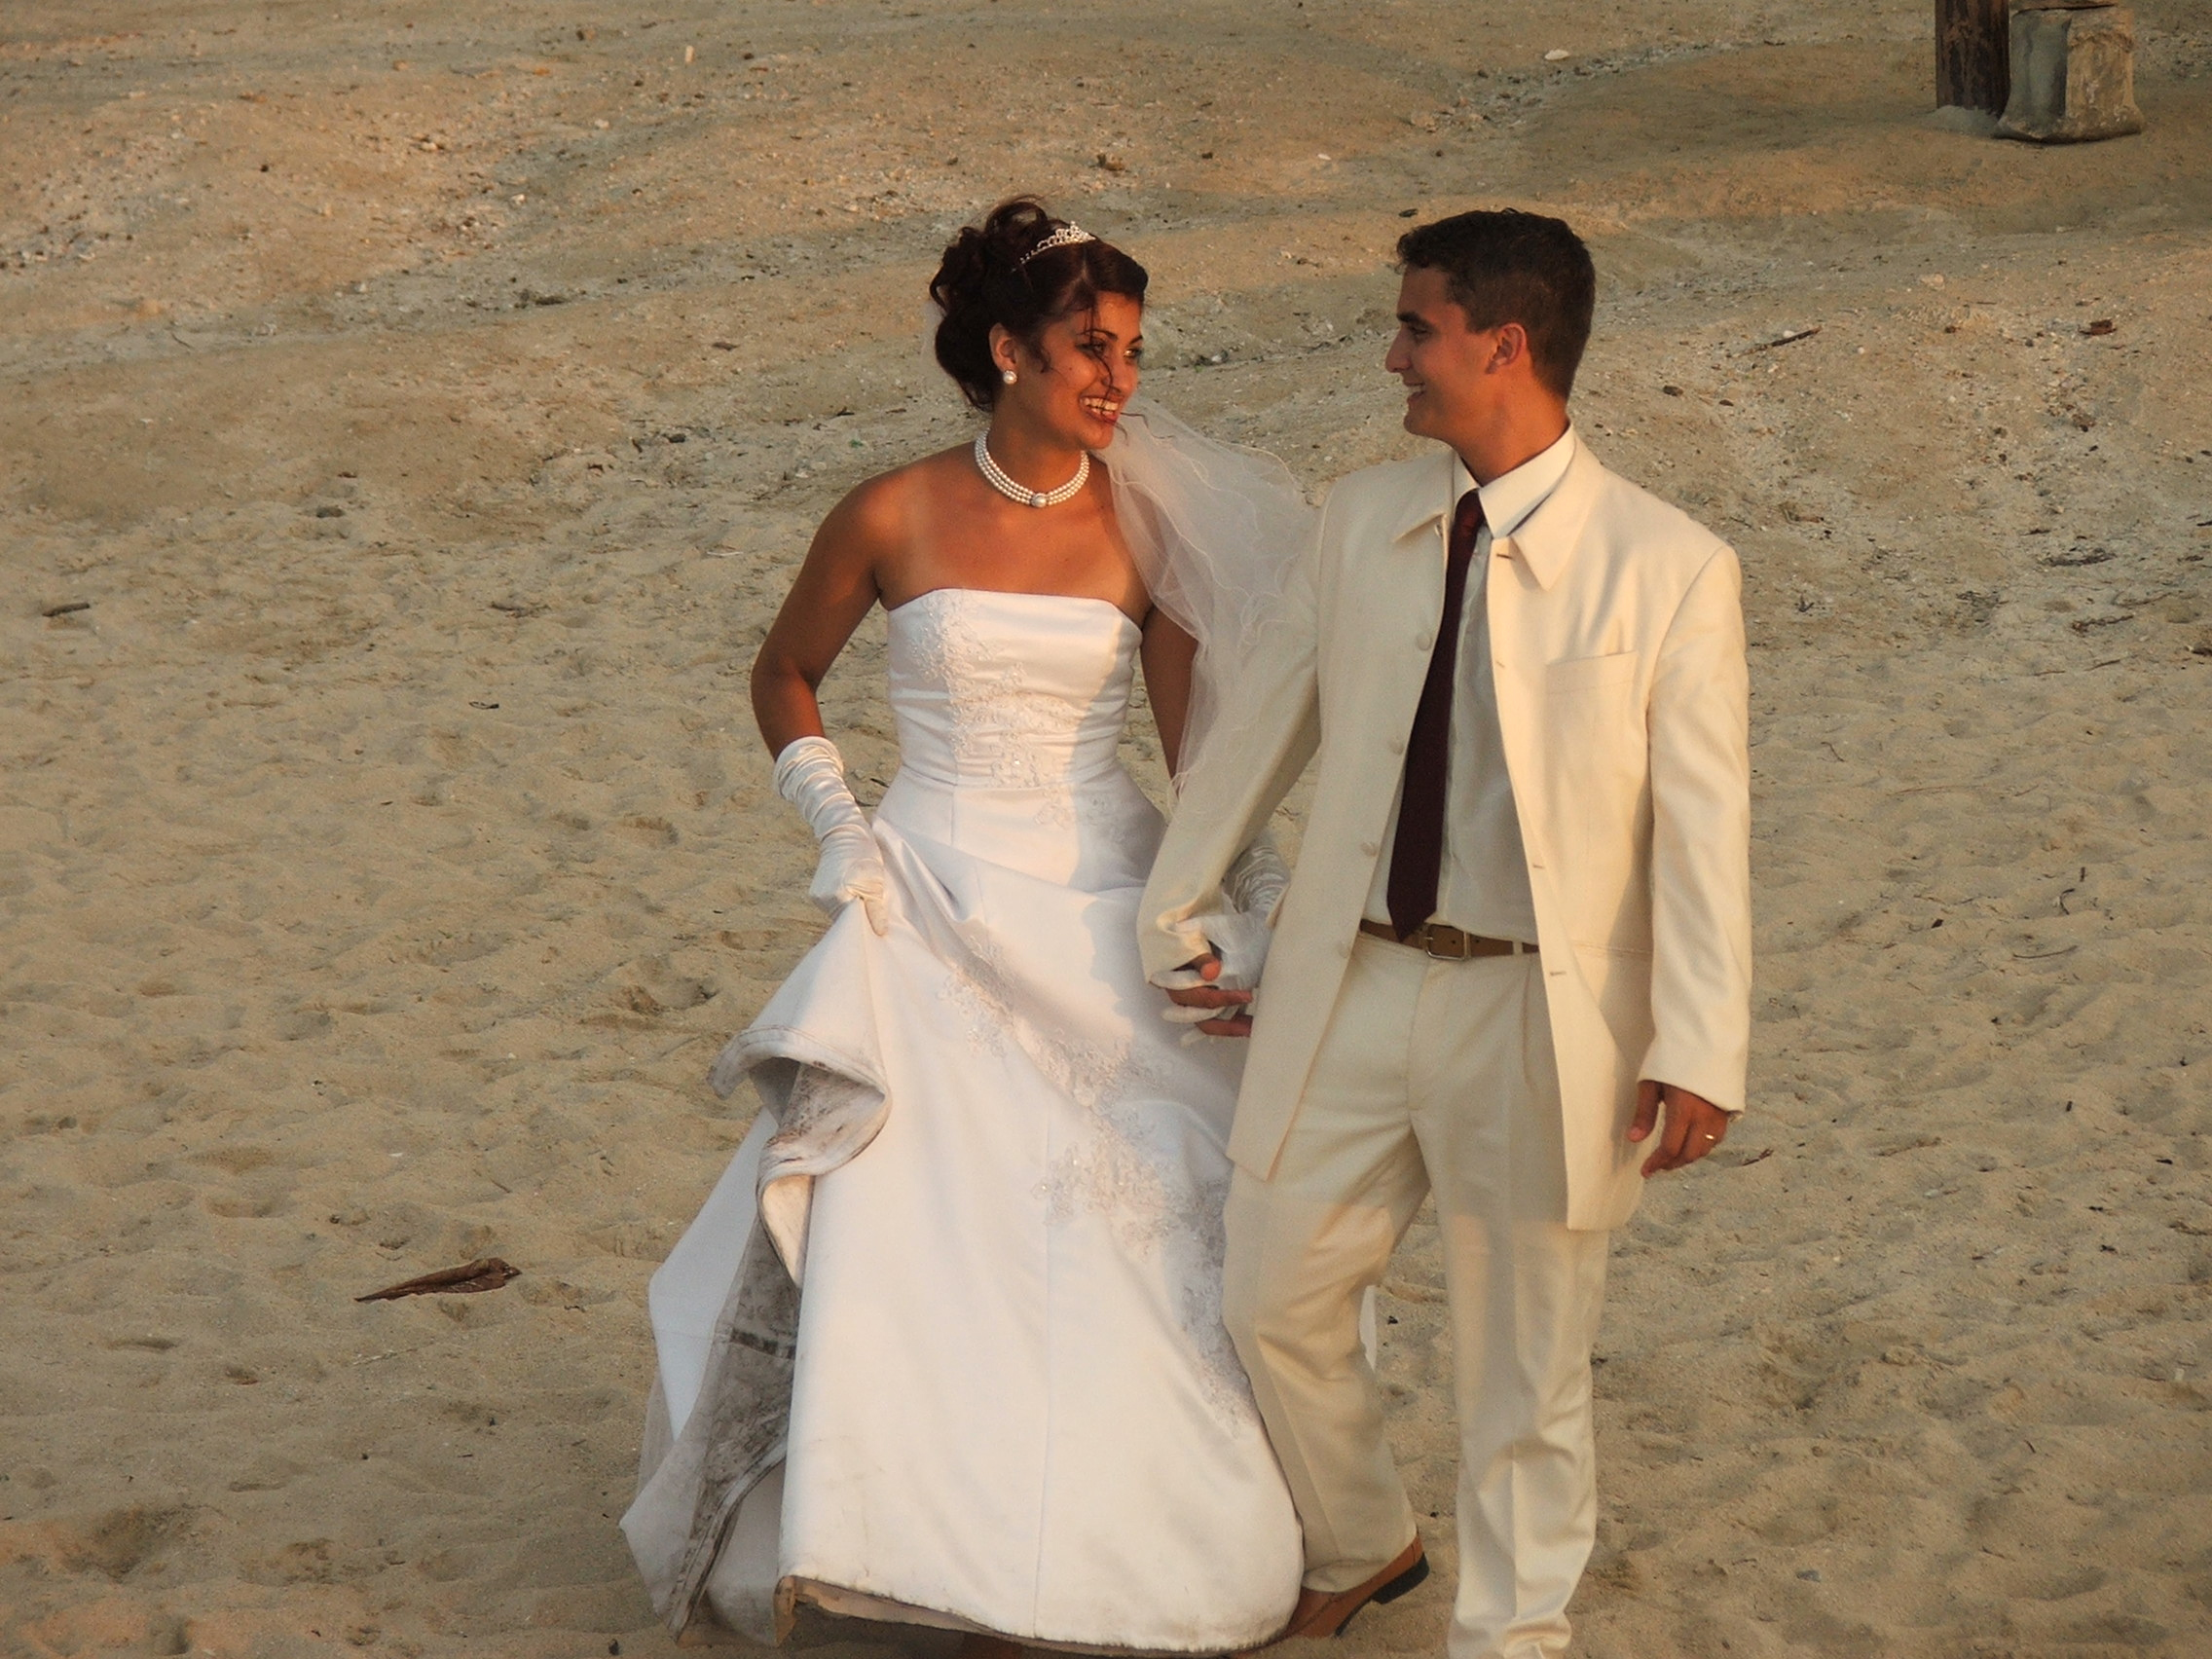 just-married-1434851